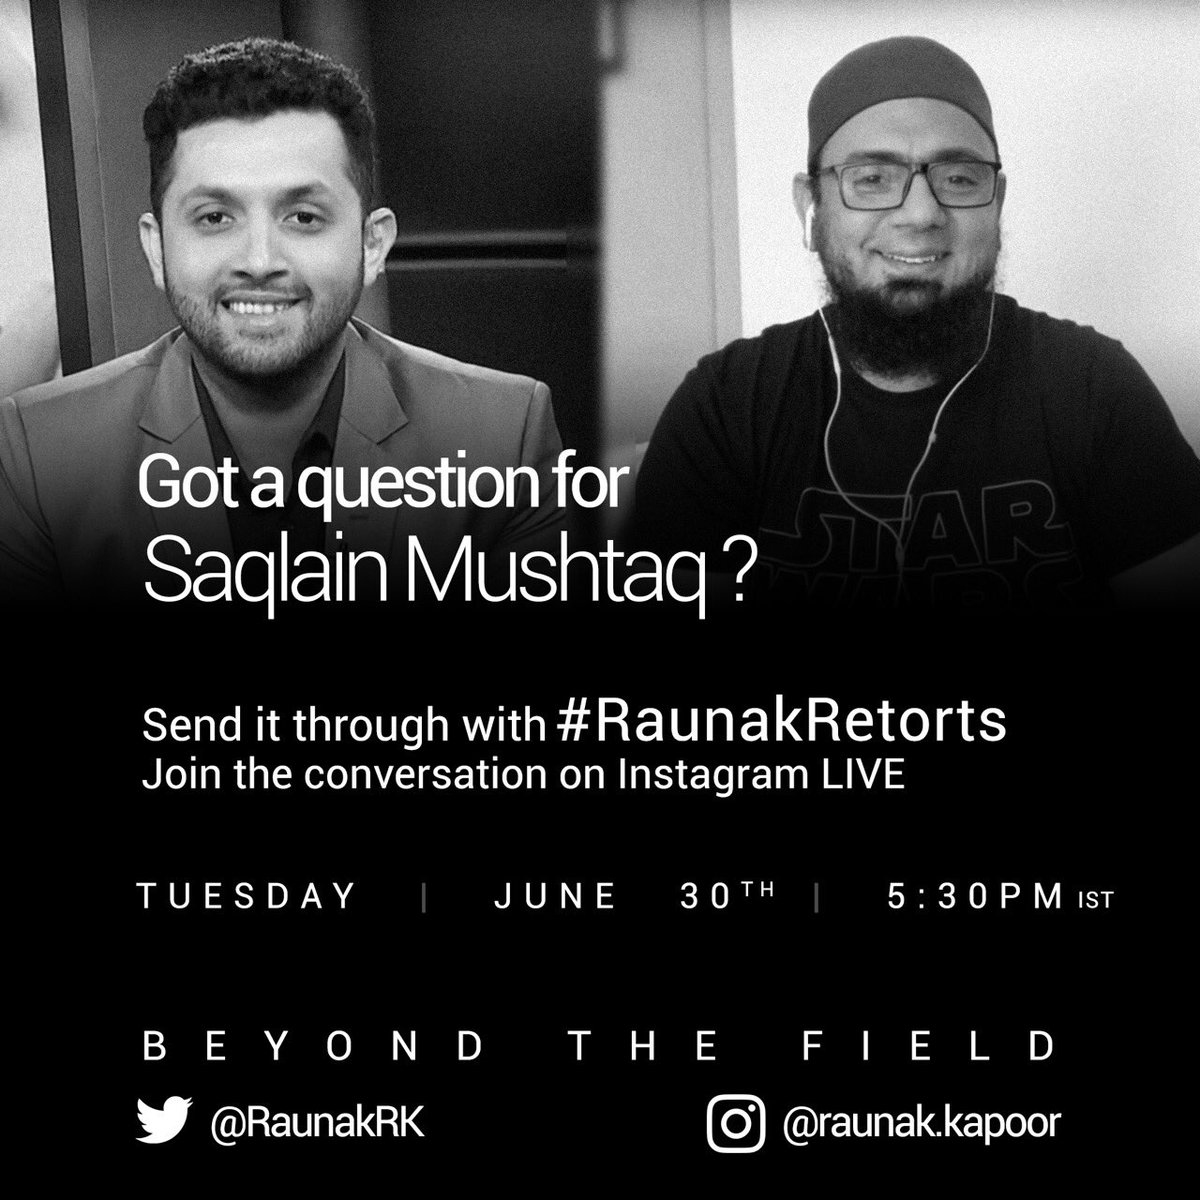 So looking forward to this. @Saqlain_Mushtaq on #BeyondTheField today. Catch the InstaLive at 5.30pm IST / 5pm PKT #RaunakRetorts https://t.co/gGVgPIKpmf https://t.co/Mxbz6MIXV8